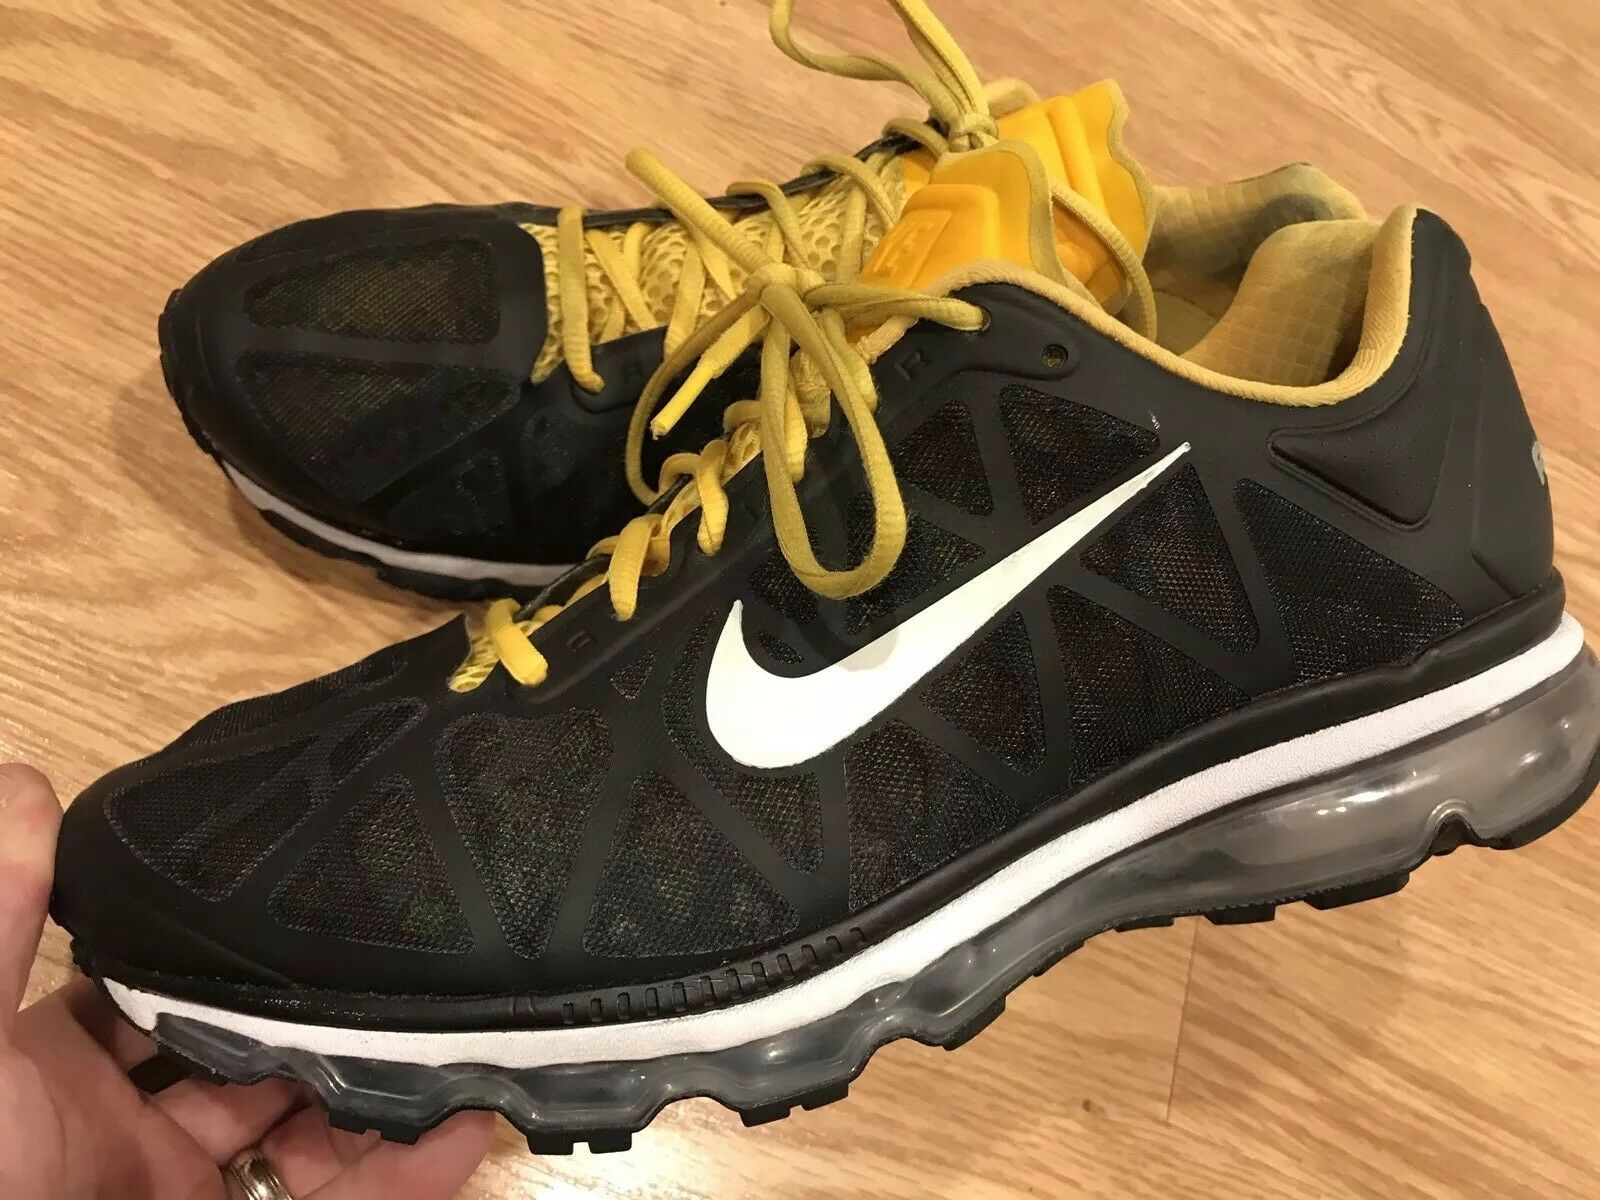 low priced 0c4cd b85f2 Nike Mens Armstrong Air Max+ LAF Running shoes Varsity Maize Size 11.5